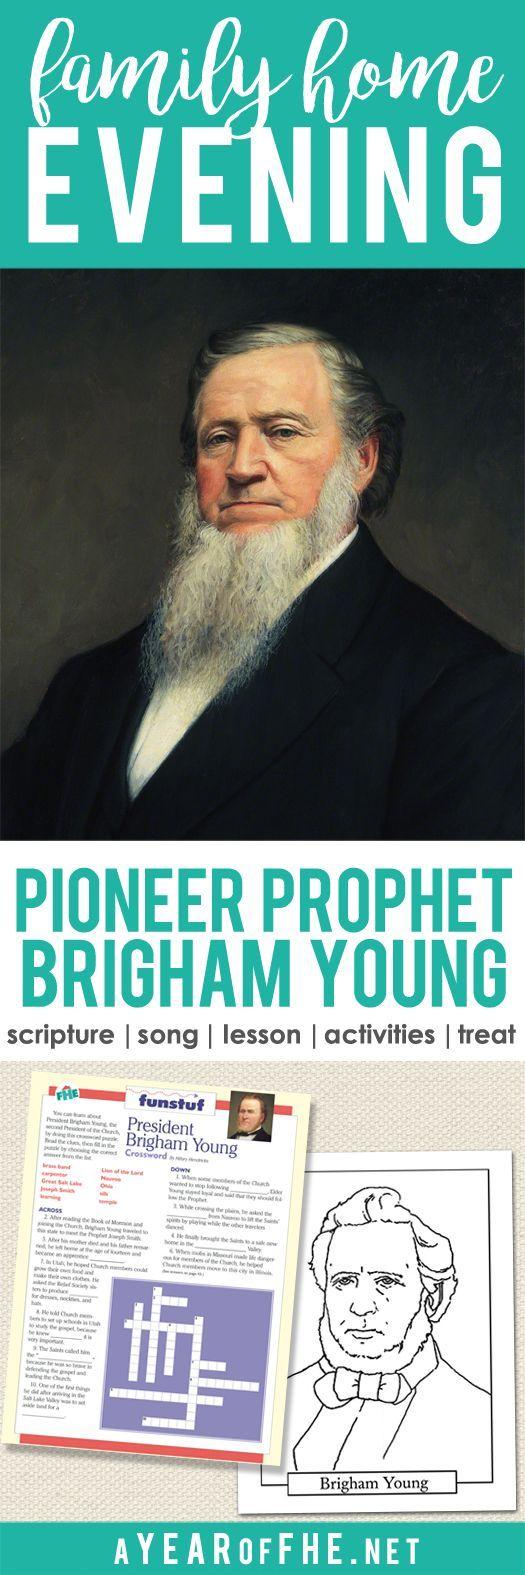 A Year of FHE // Check out this Family Home Evening about Brigham Young! It teaches small children how he led the church and how he led the Pioneers across the US to Utah.  Includes scripture, song, lesson, activities for small kids and older kids, and a treat that Brigham Young himself ate! Such a great lesson for Pioneer Day! #lds #brighamyoung #pioneers #fhe